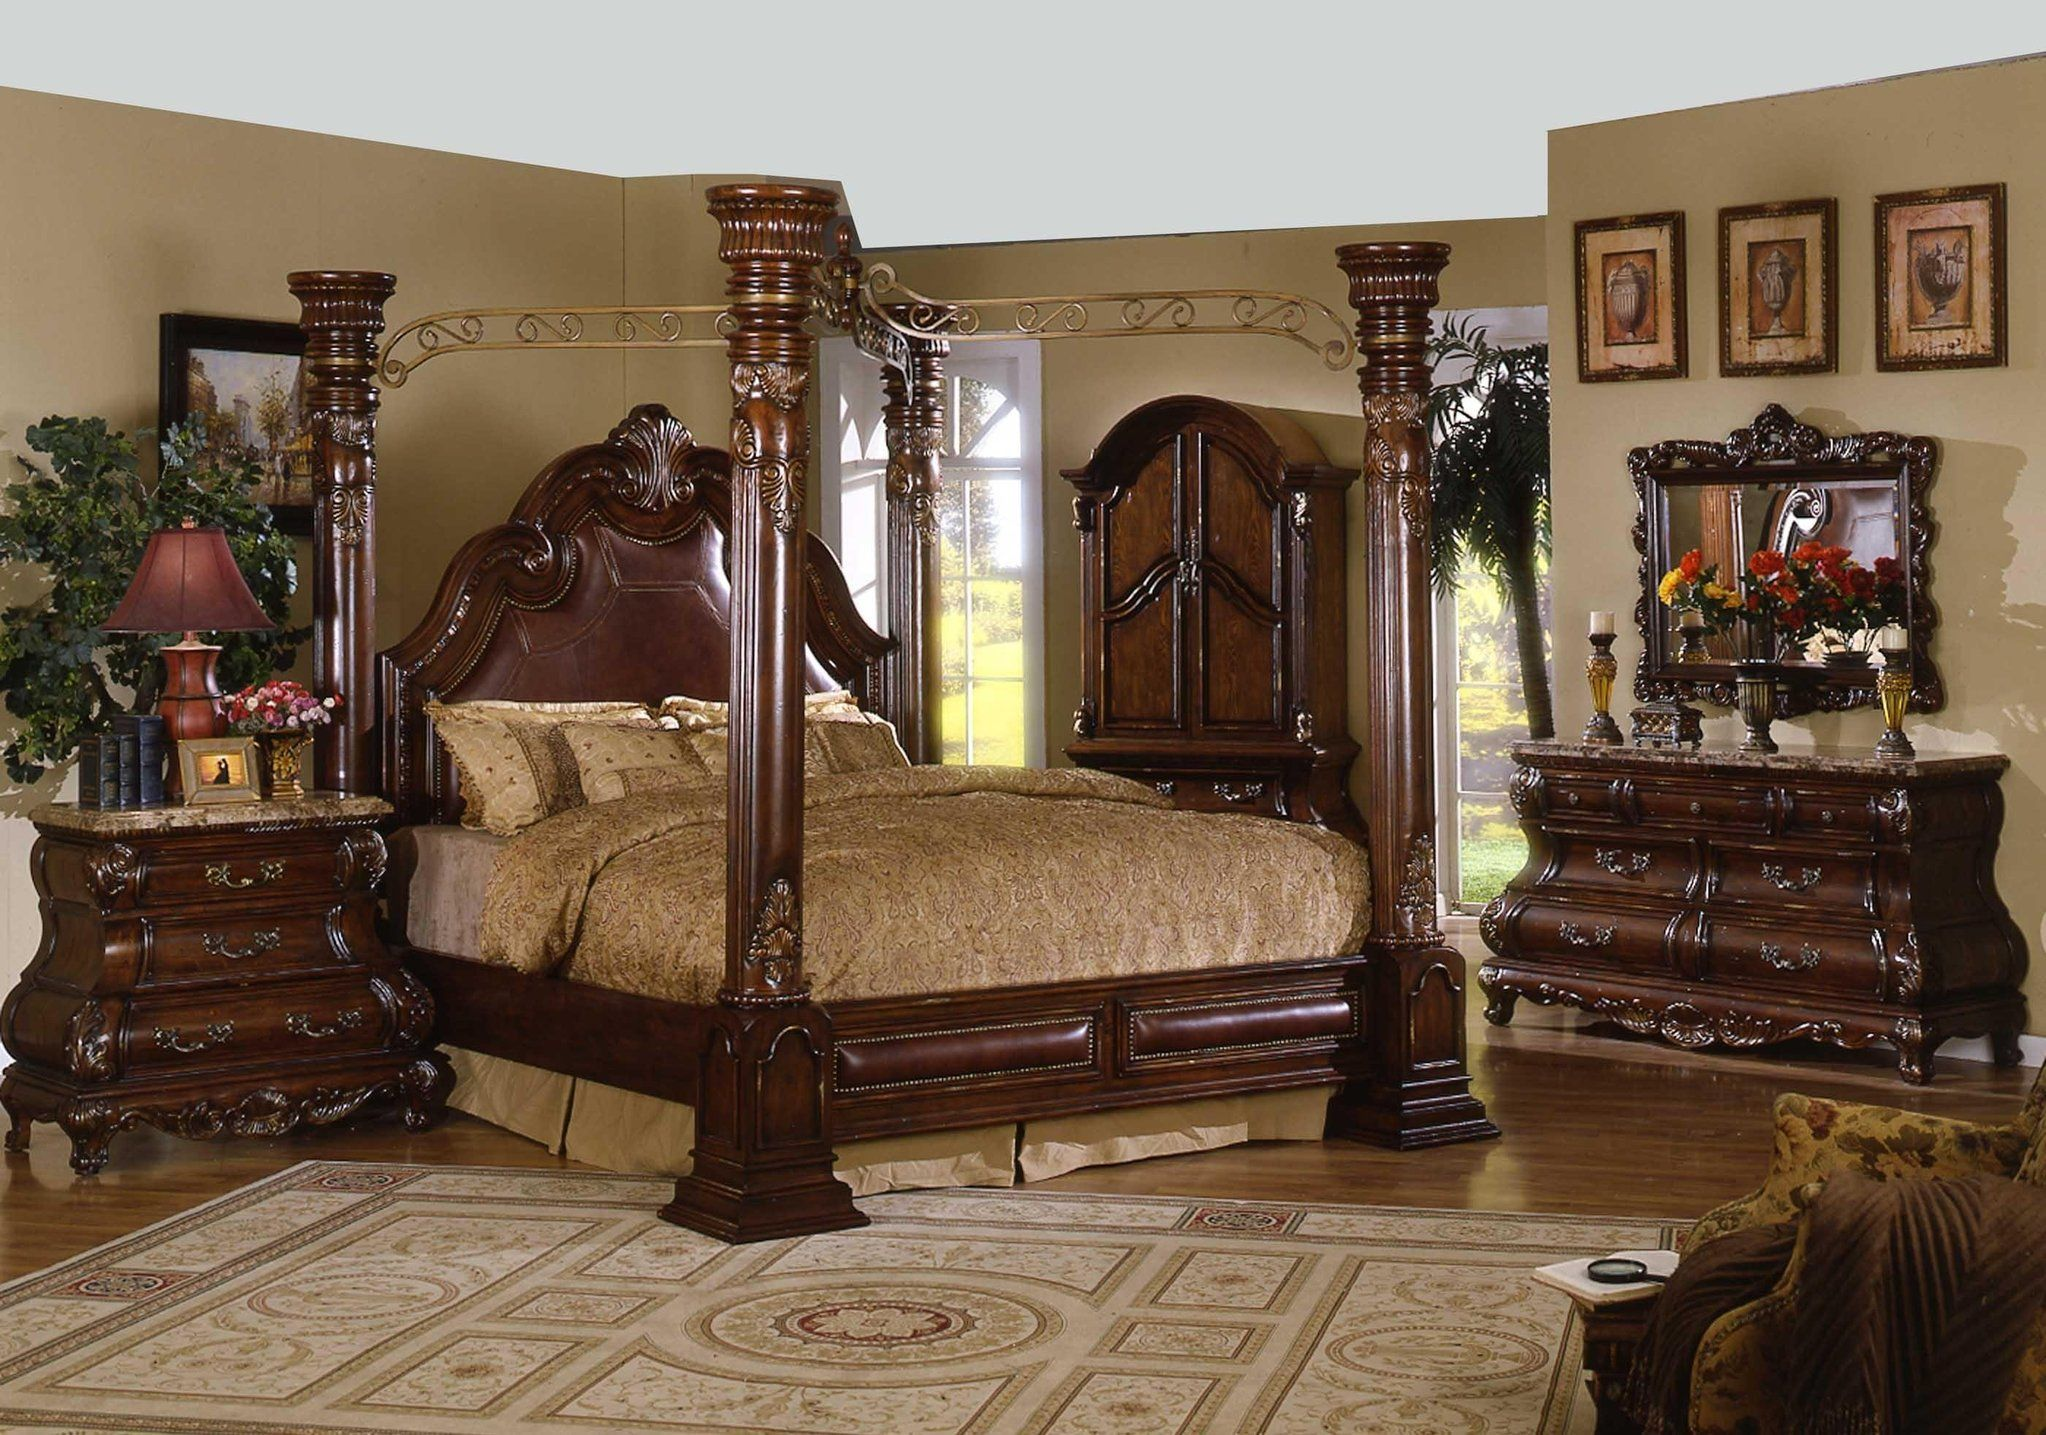 Queen Poster Bedroom Sets Concept Stunning 2499 Canopy Bed  Canopy Bedroom Sets  Four Post Canopy Bed 4734 . Design Ideas